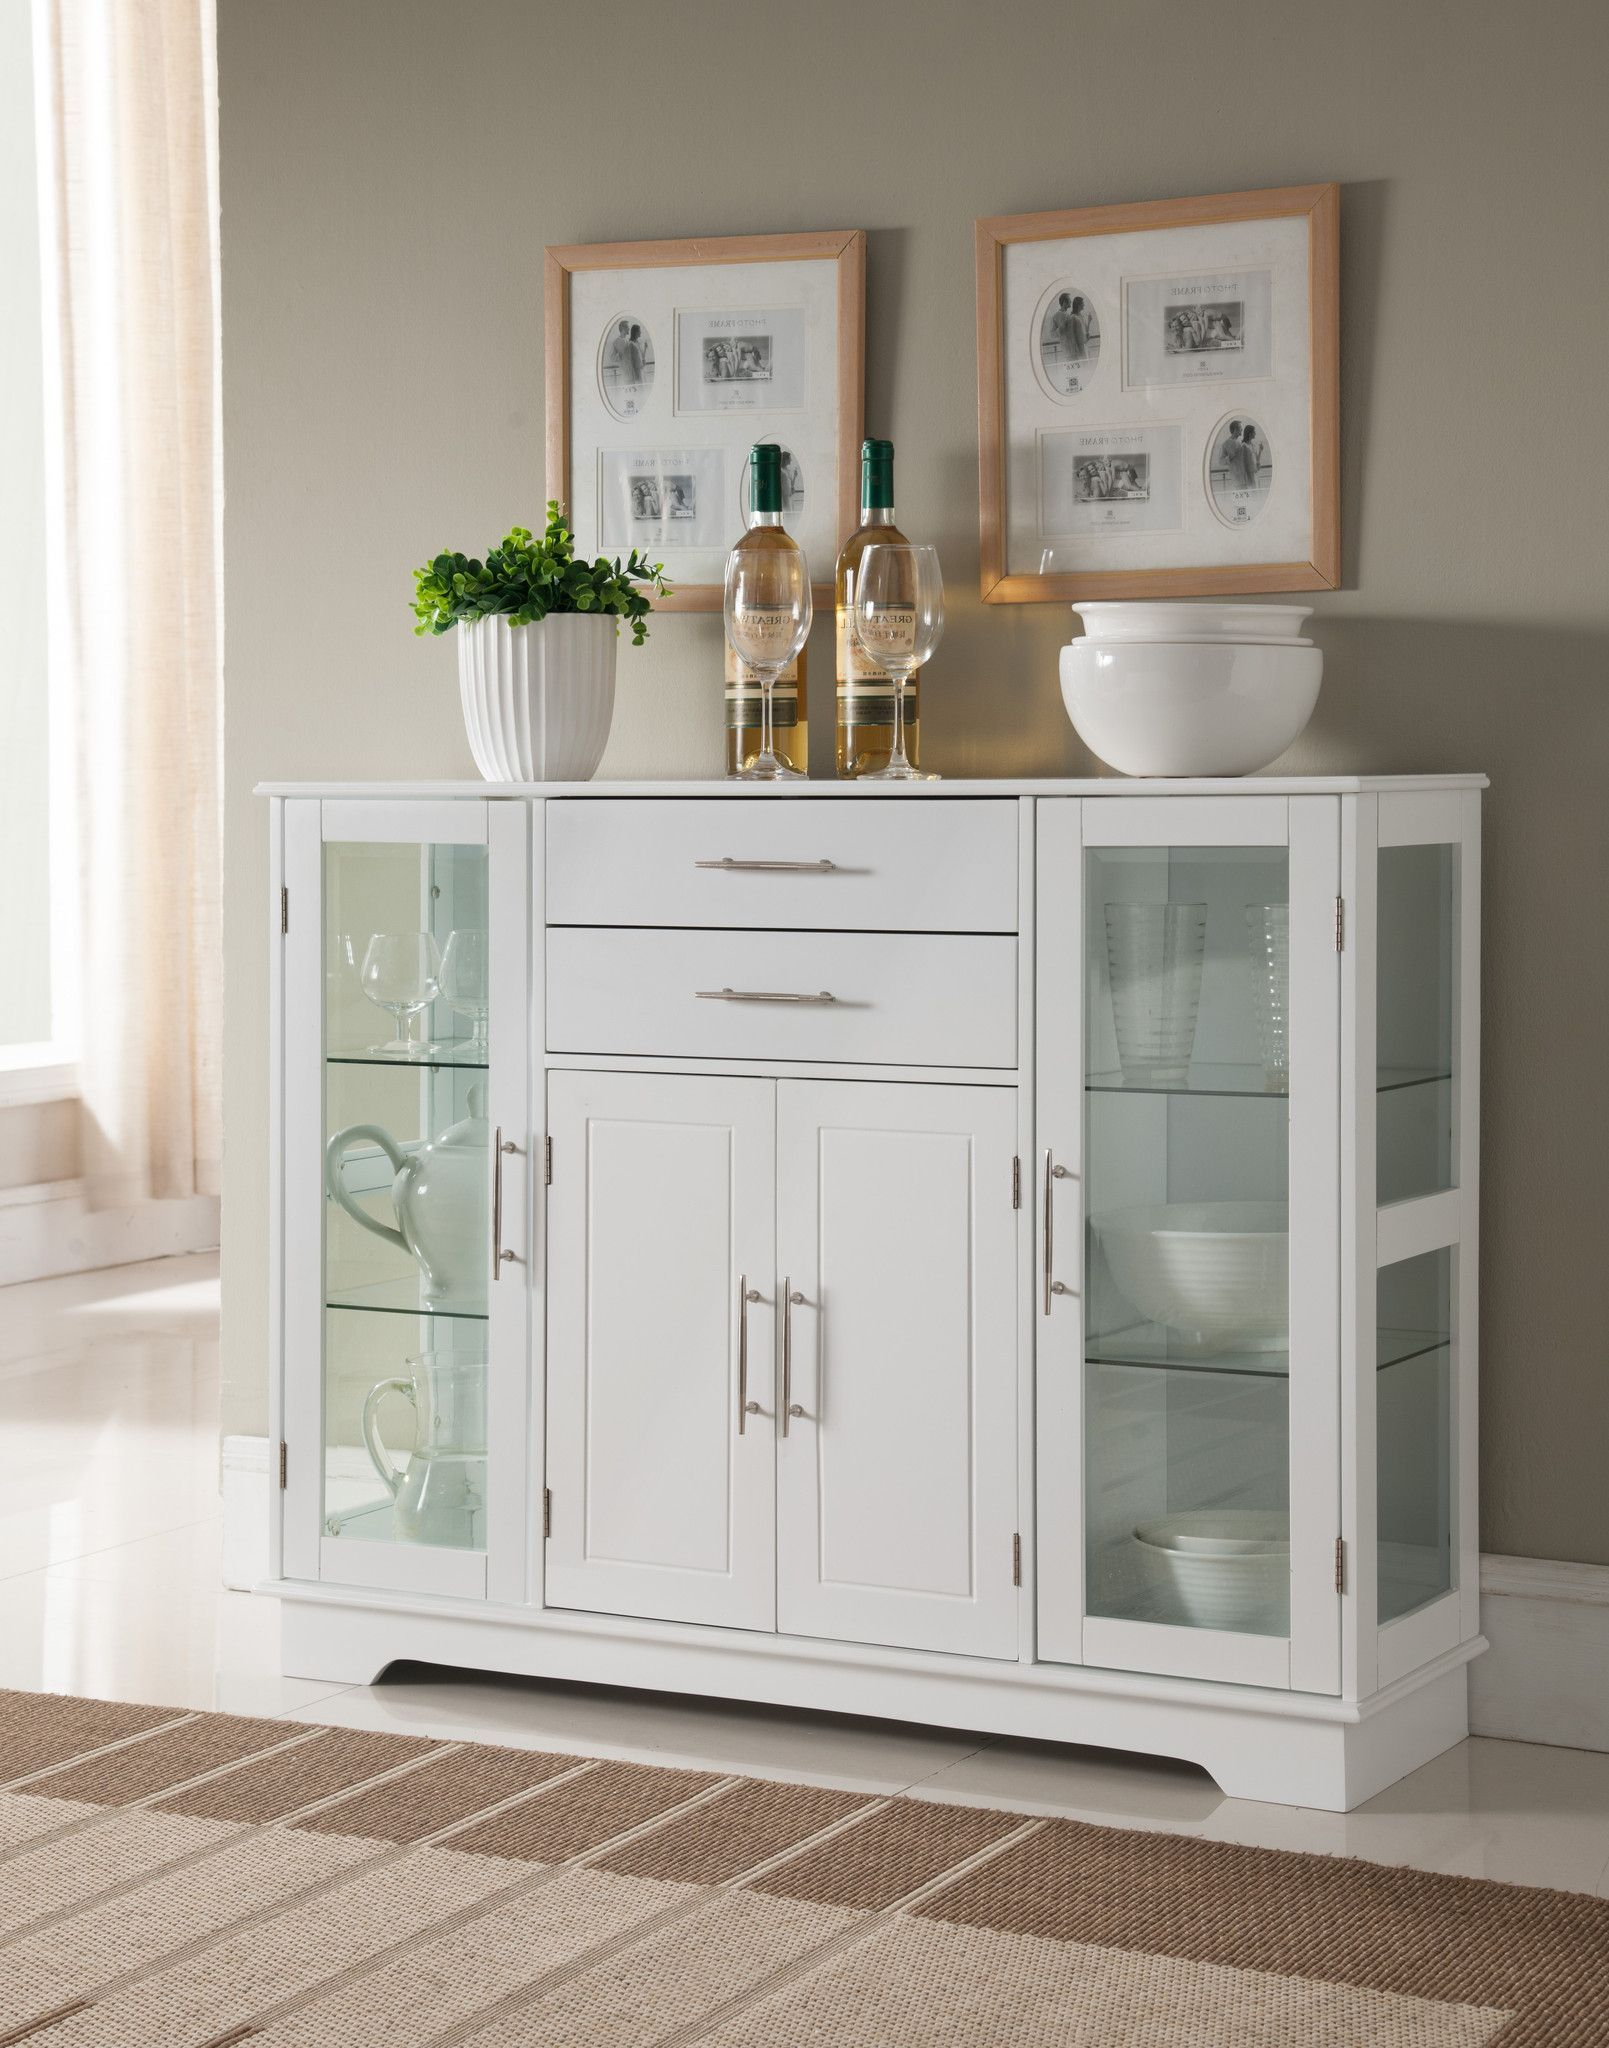 Buffet Kitchen Cabinet Pilaster Designs White Wood Kitchen Storage Display Cabinet